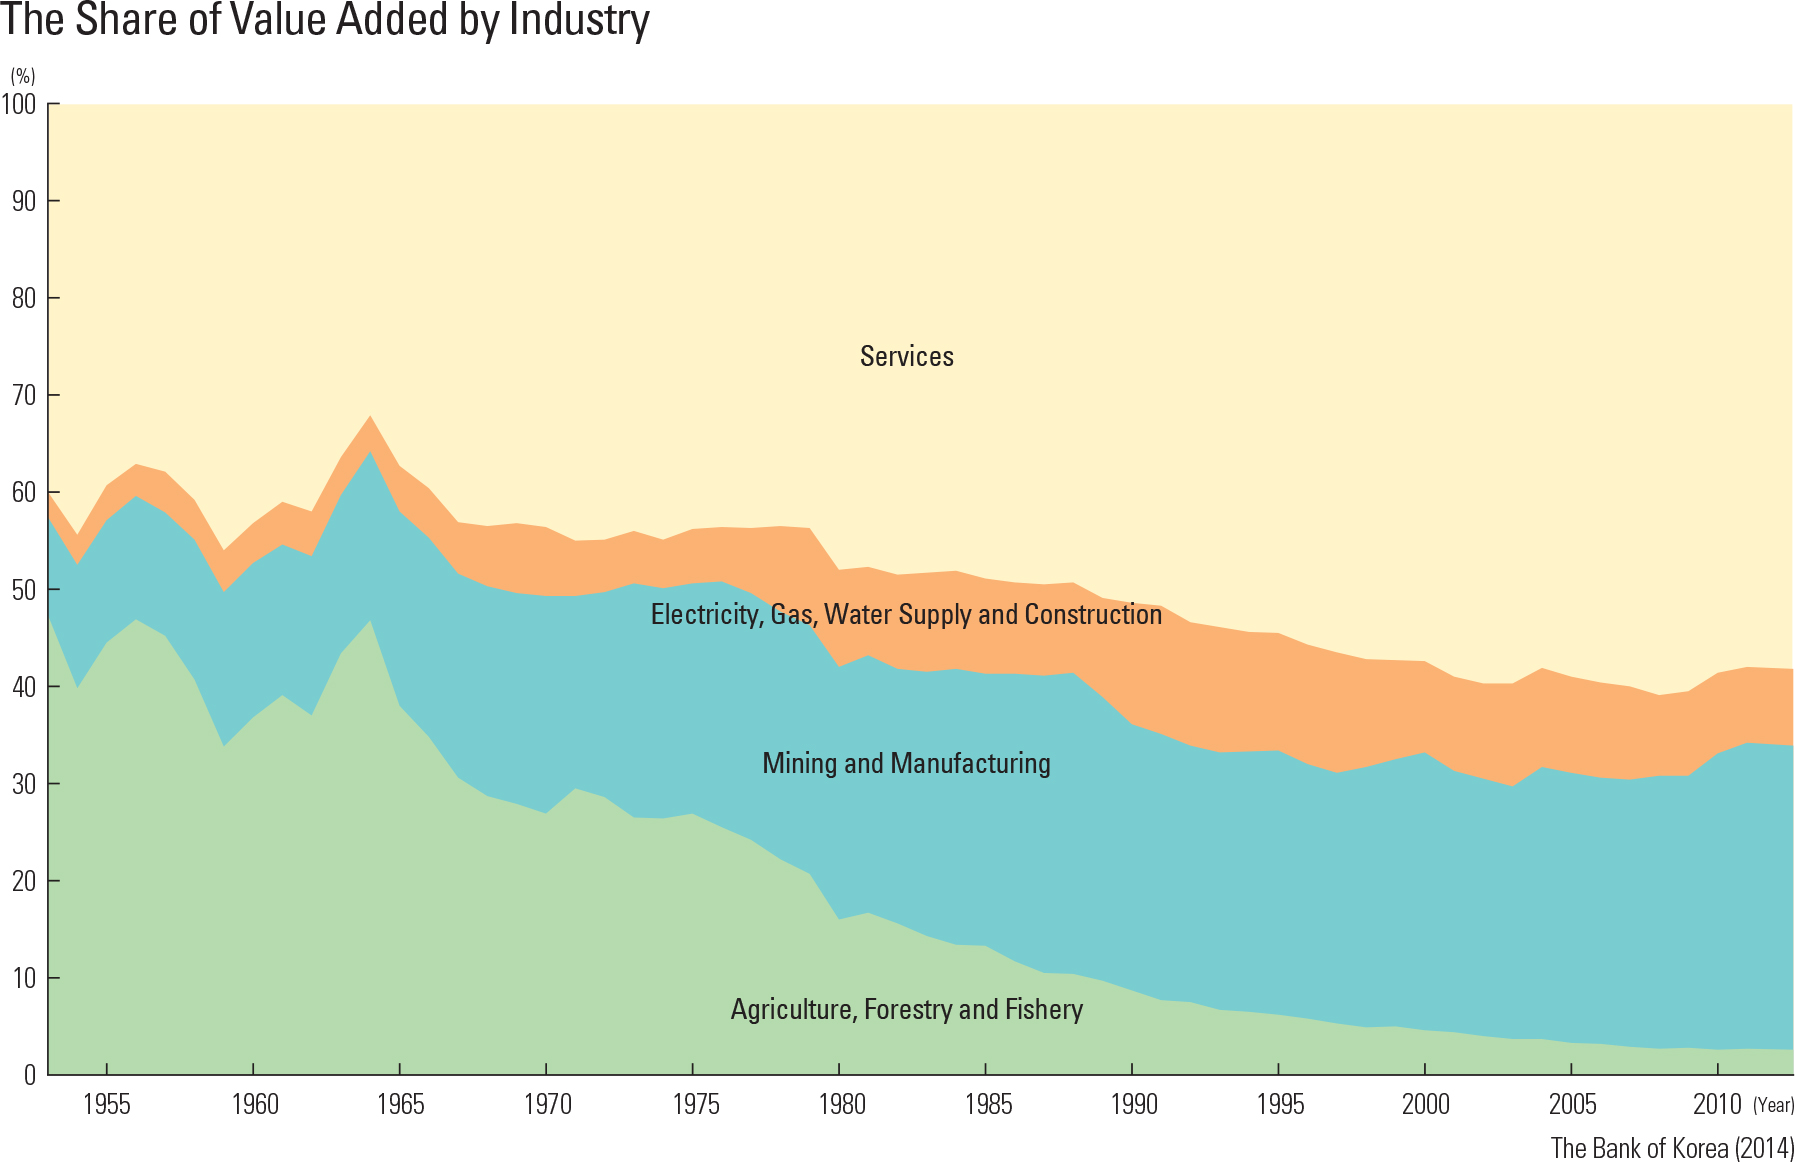 """The Share of Value Added by Industry<p class=""""oz_zoom"""" zimg=""""http://imagedata.cafe24.com/us_1/us1_96-2_2.jpg""""><span style=""""font-family:Nanum Myeongjo;""""><span style=""""font-size:18px;""""><span class=""""label label-danger"""">UPDATE DATA</span></span></p>"""